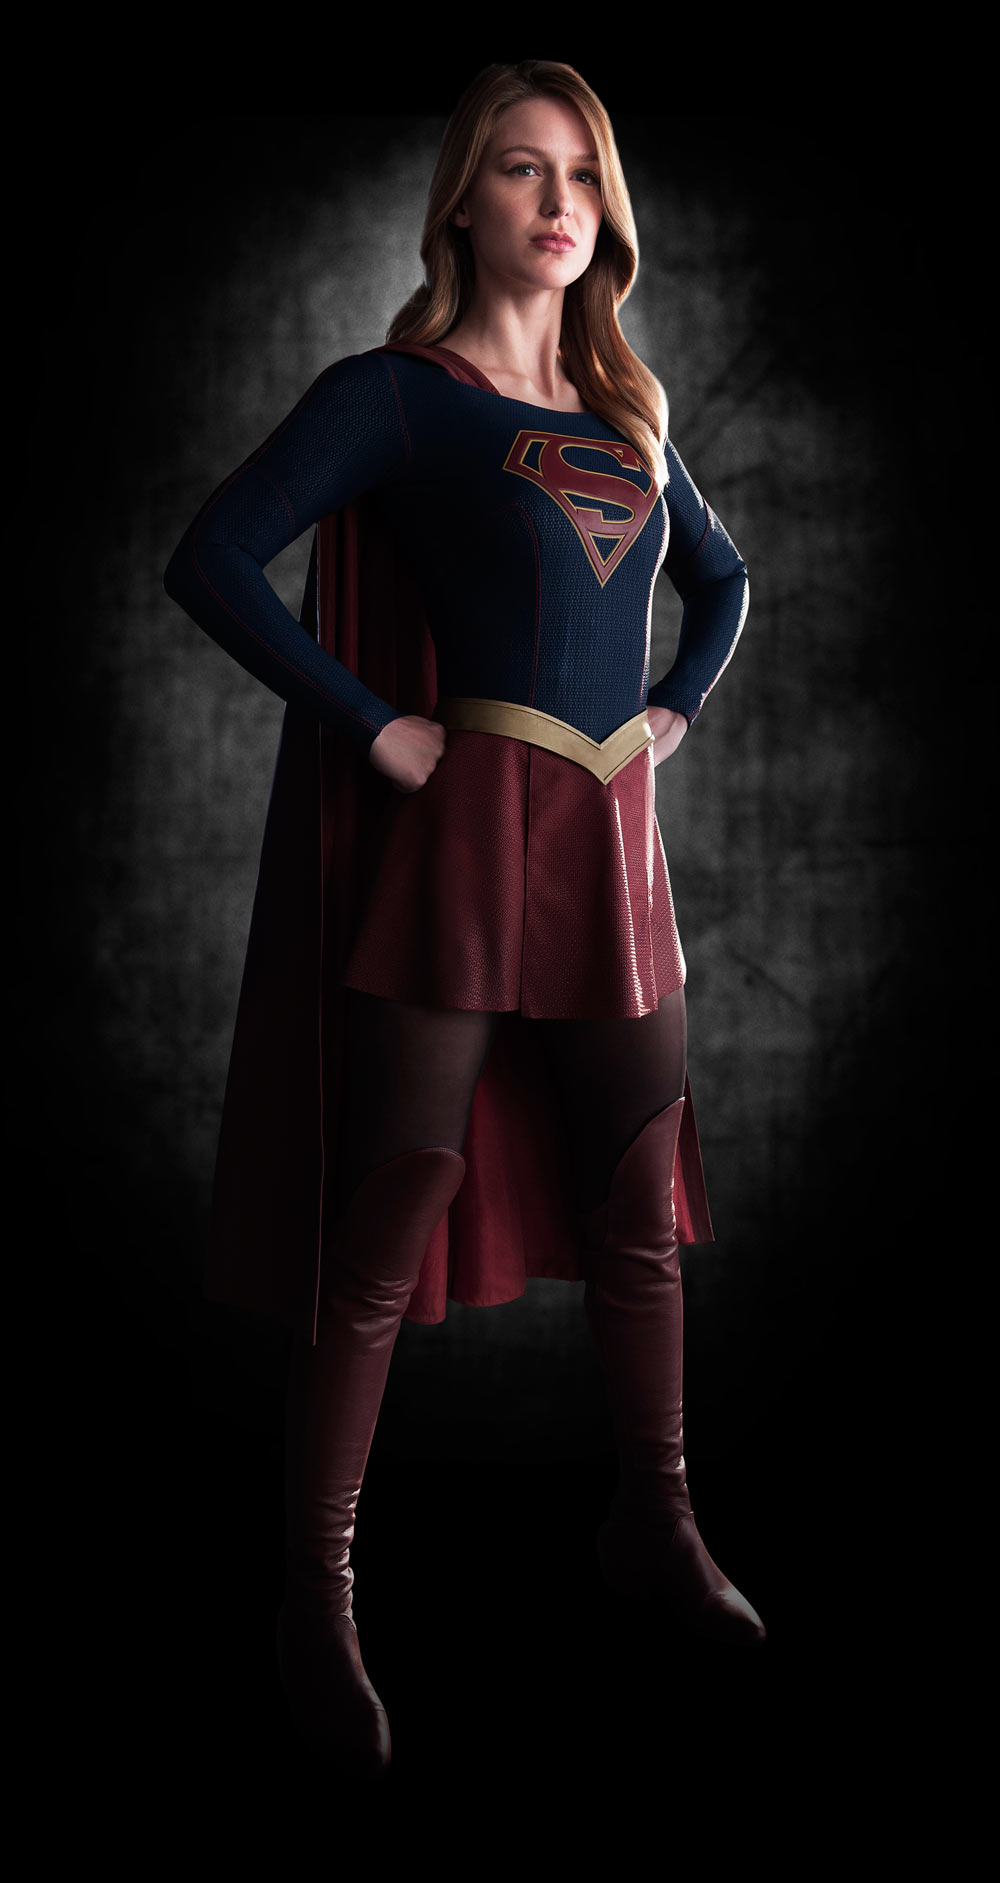 Supergirl TV costume revealed